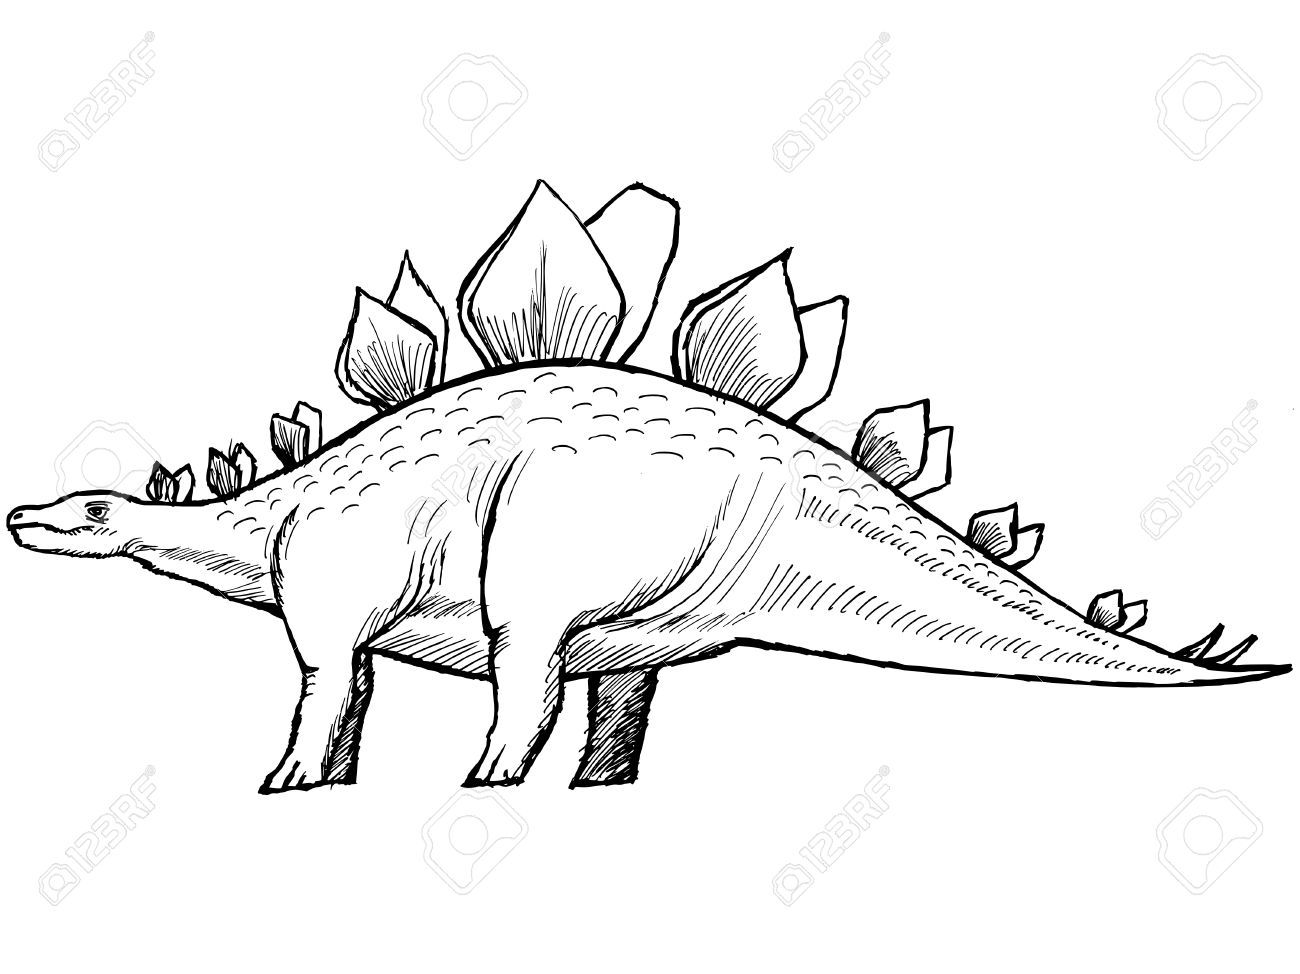 1300x974 Hand Drawn, Sketch Illustration Of Stegosaurus Royalty Free